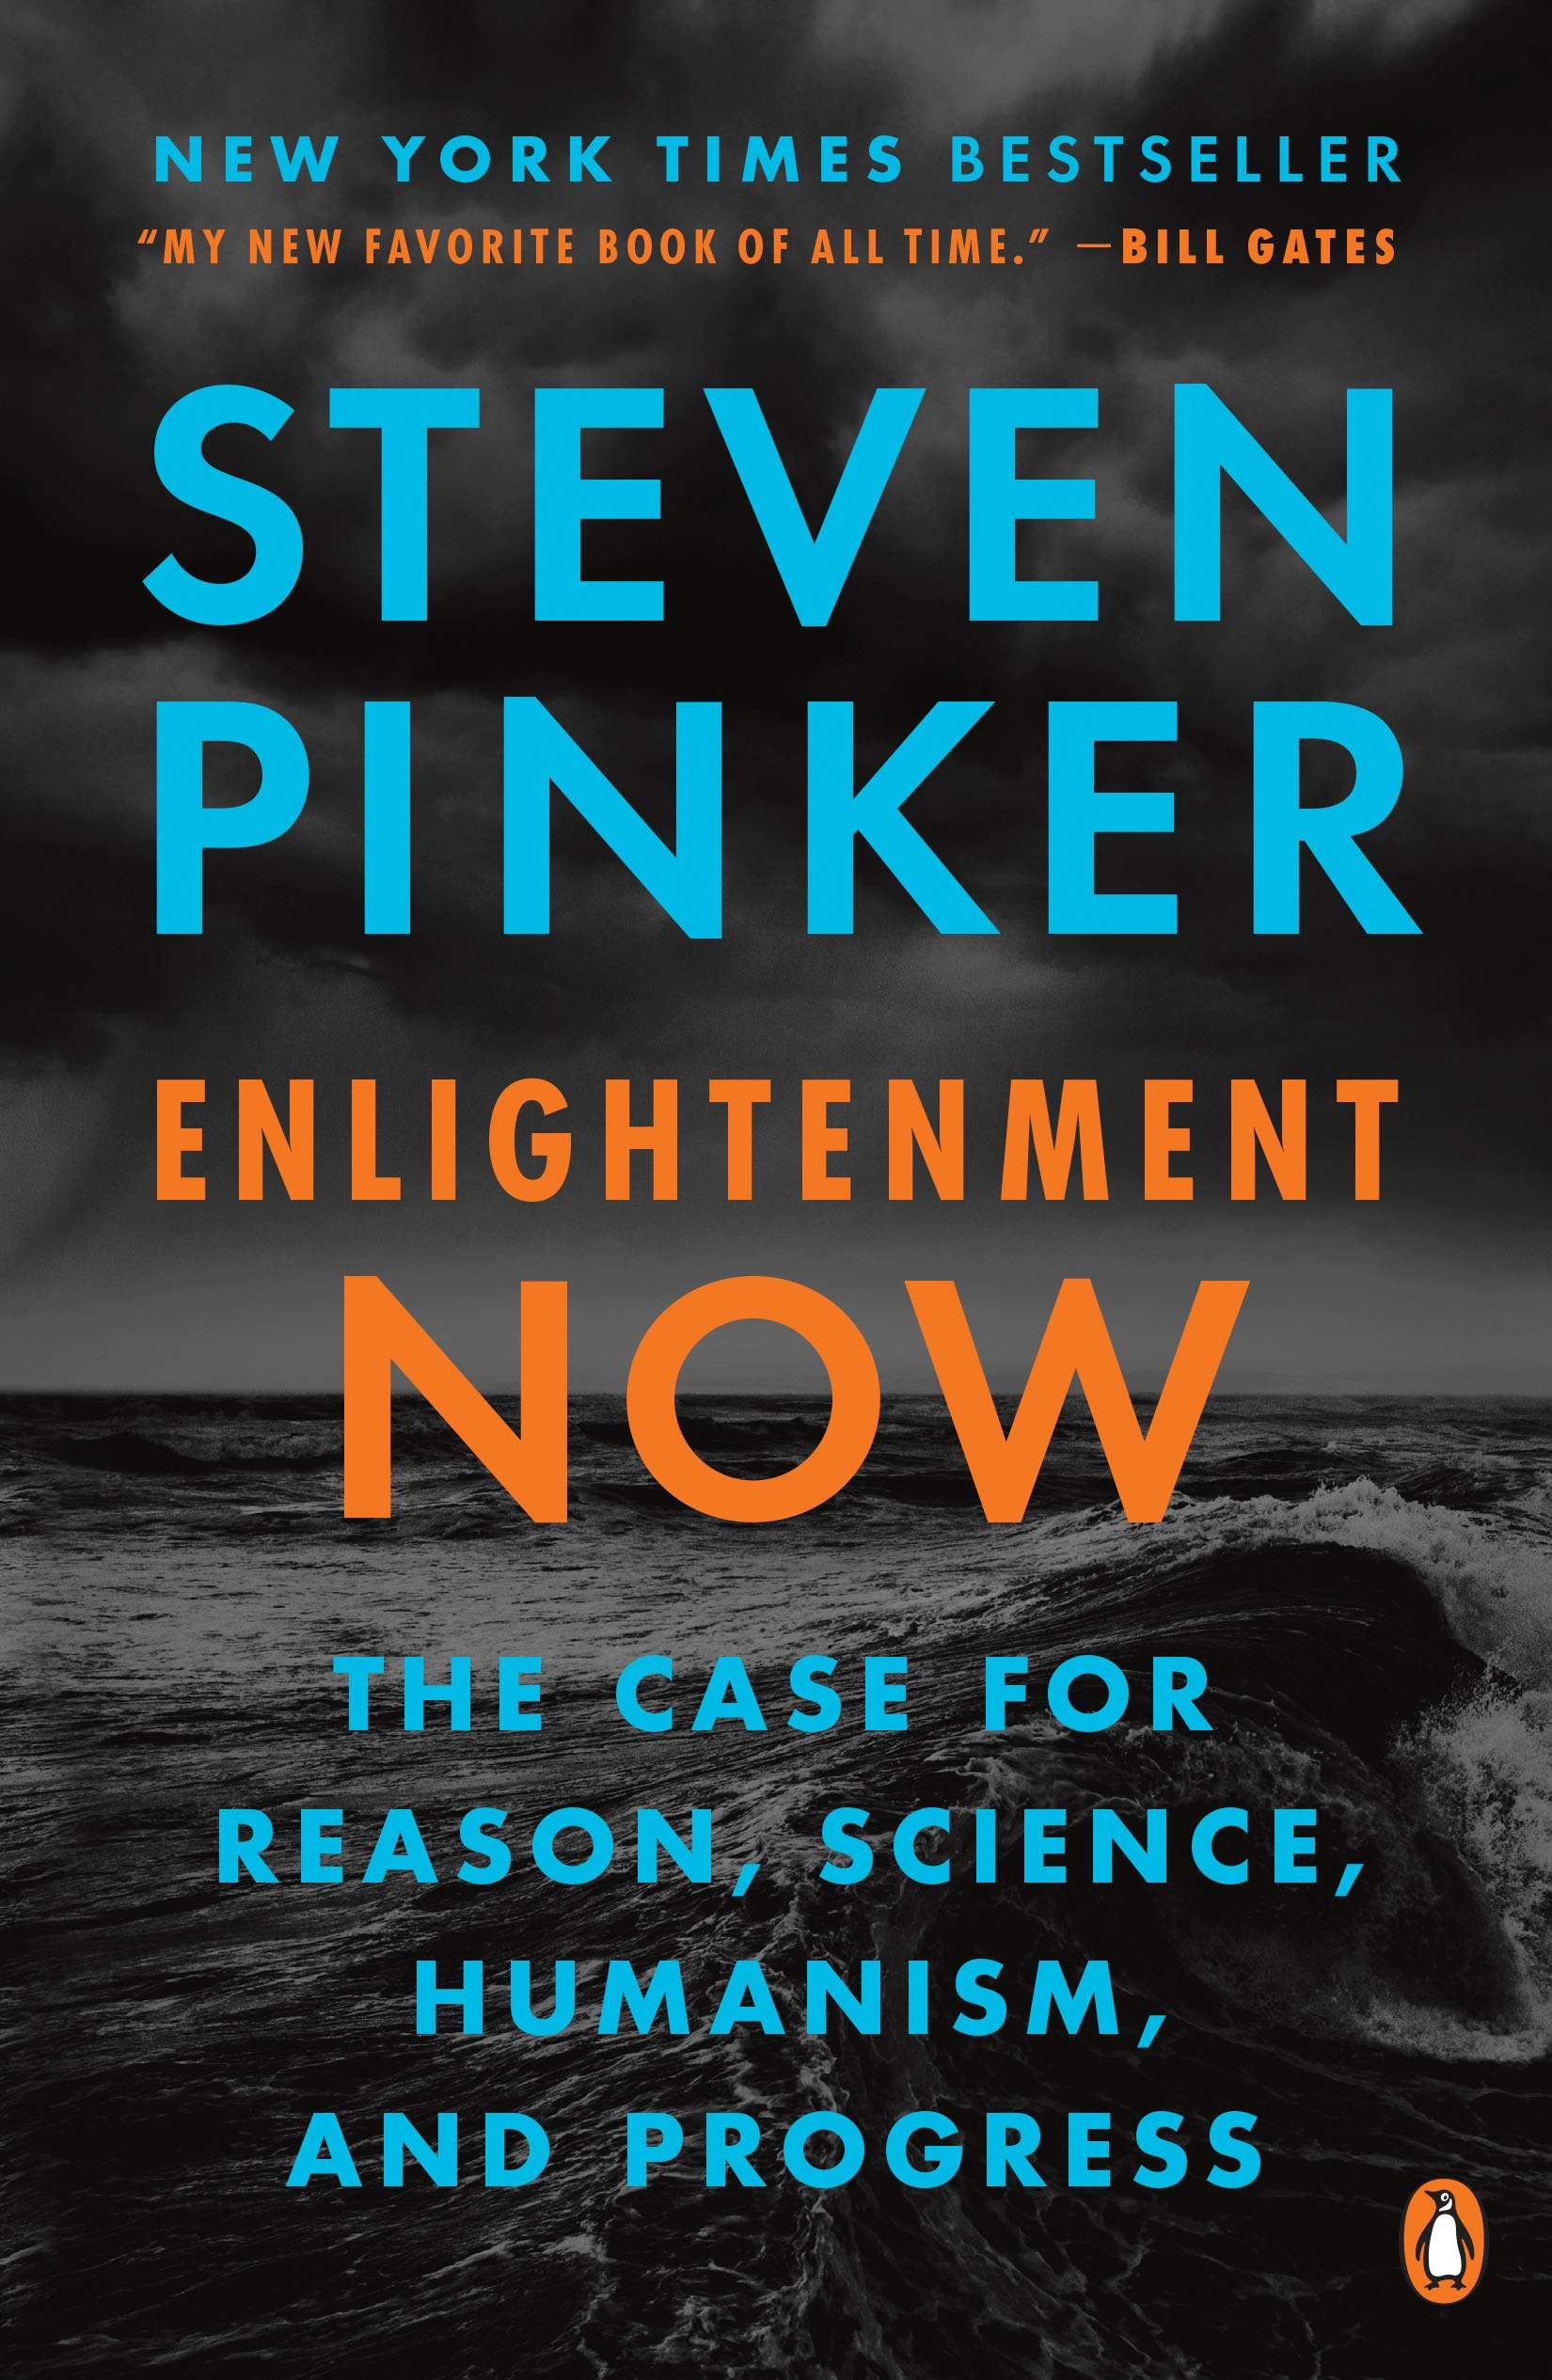 Enlightenment NOW - by Steven PinkerDavid Rainoshek, M.A.: We have placed this book here for an ever larger perspective on the present moment. Lest we think that it's all bad news as we have moved forward to the modern and post-modern eras, there is a tremendous amount of good news, and Steven Pinker excels at pointing out the incredible promise of humanity. Here's the overview of the book:If you think the world is coming to an end, think again: people are living longer, healthier, freer, and happier lives, and while our problems are formidable, the solutions lie in the Enlightenment ideal of using reason and science.Is the world really falling apart? Is the ideal of progress obsolete? In this elegant assessment of the human condition in the third millennium, cognitive scientist and public intellectual Steven Pinker urges us to step back from the gory headlines and prophecies of doom, which play to our psychological biases. Instead, follow the data: In seventy-five jaw-dropping graphs, Pinker shows that life, health, prosperity, safety, peace, knowledge, and happiness are on the rise, not just in the West, but worldwide. This progress is not the result of some cosmic force. It is a gift of the Enlightenment: the conviction that reason and science can enhance human flourishing.Far from being a naïve hope, the Enlightenment, we now know, has worked. But more than ever, it needs a vigorous defense. The Enlightenment project swims against currents of human nature--tribalism, authoritarianism, demonization, magical thinking--which demagogues are all too willing to exploit. Many commentators, committed to political, religious, or romantic ideologies, fight a rearguard action against it. The result is a corrosive fatalism and a willingness to wreck the precious institutions of liberal democracy and global cooperation. With intellectual depth and literary flair, Enlightenment Now makes the case for reason, science, and humanism: the ideals we need to confront our problems and continue our progress.